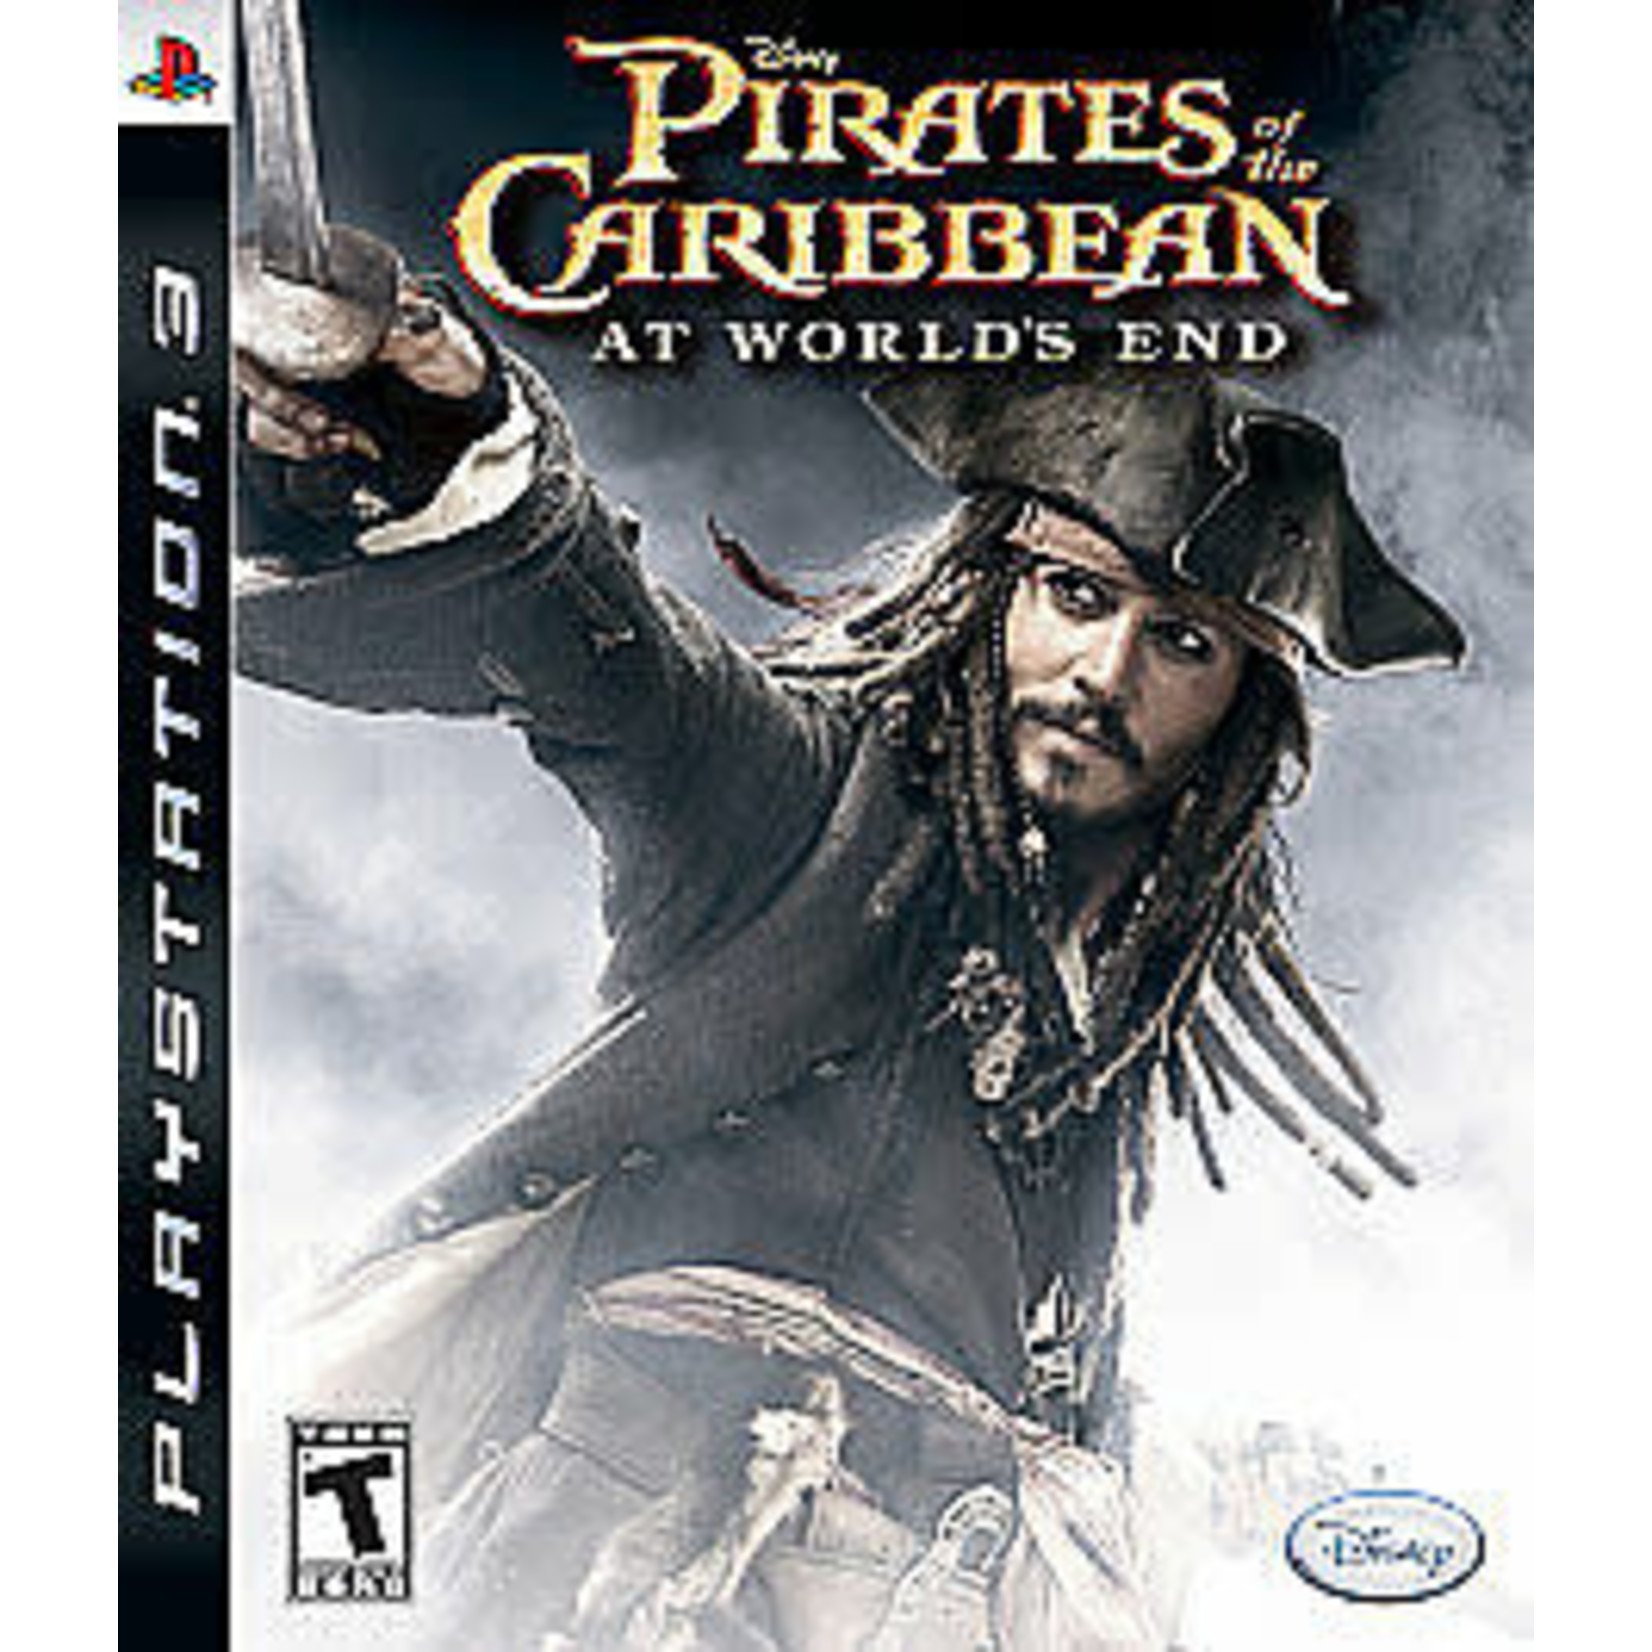 ps3u-Pirates of the Caribbean At World's End